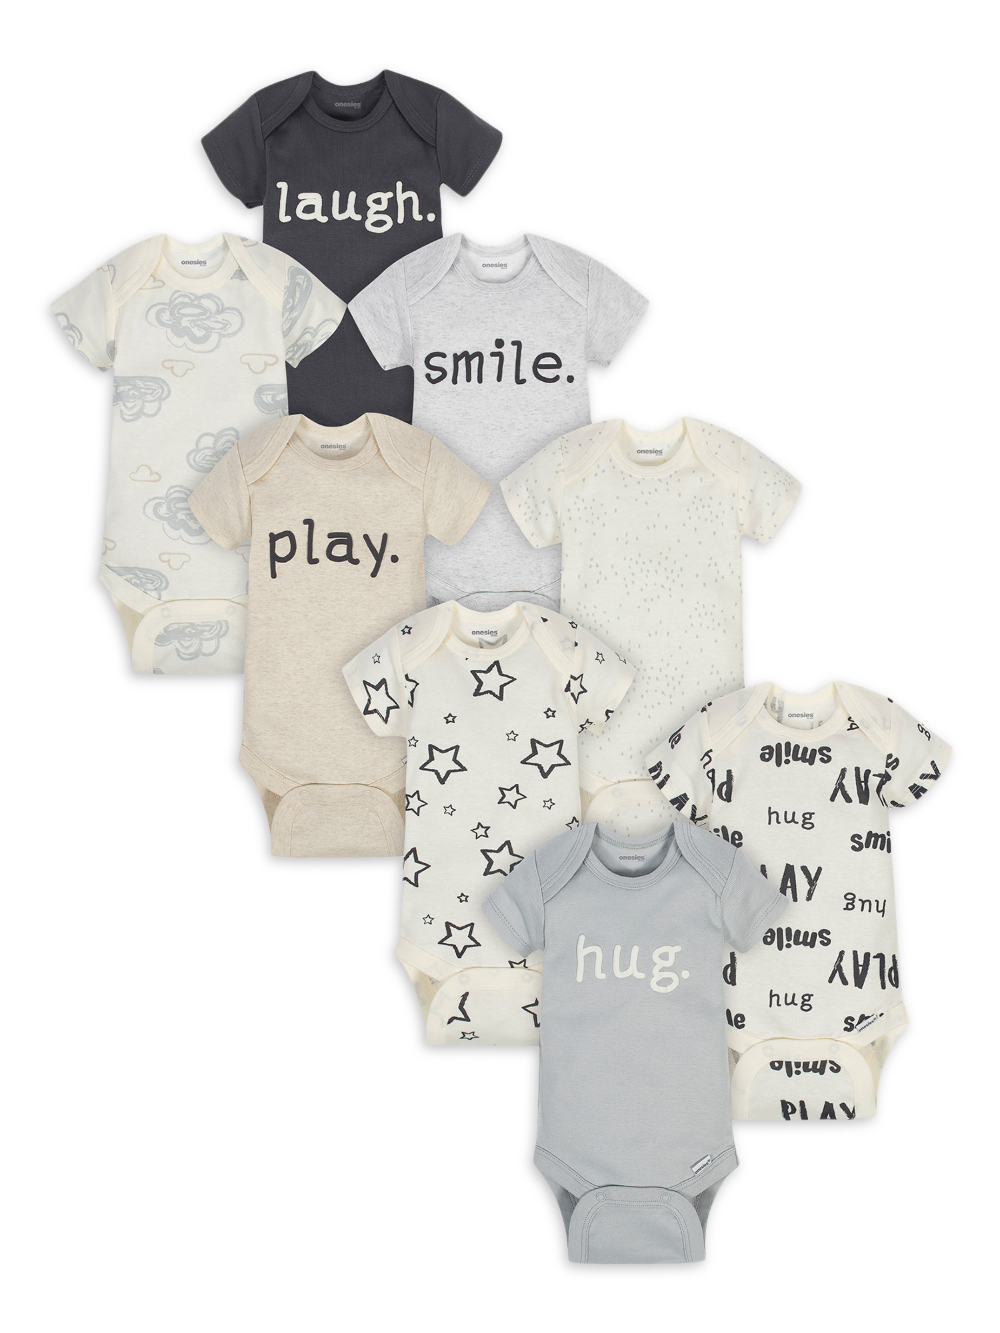 Free 2 Day Shipping On Qualified Orders Over 35 Buy Onesies Brand Baby Boy Or Girl Gender Neutral Shor Classic Baby Clothes Baby Boy Or Girl Baby Boy Outfits